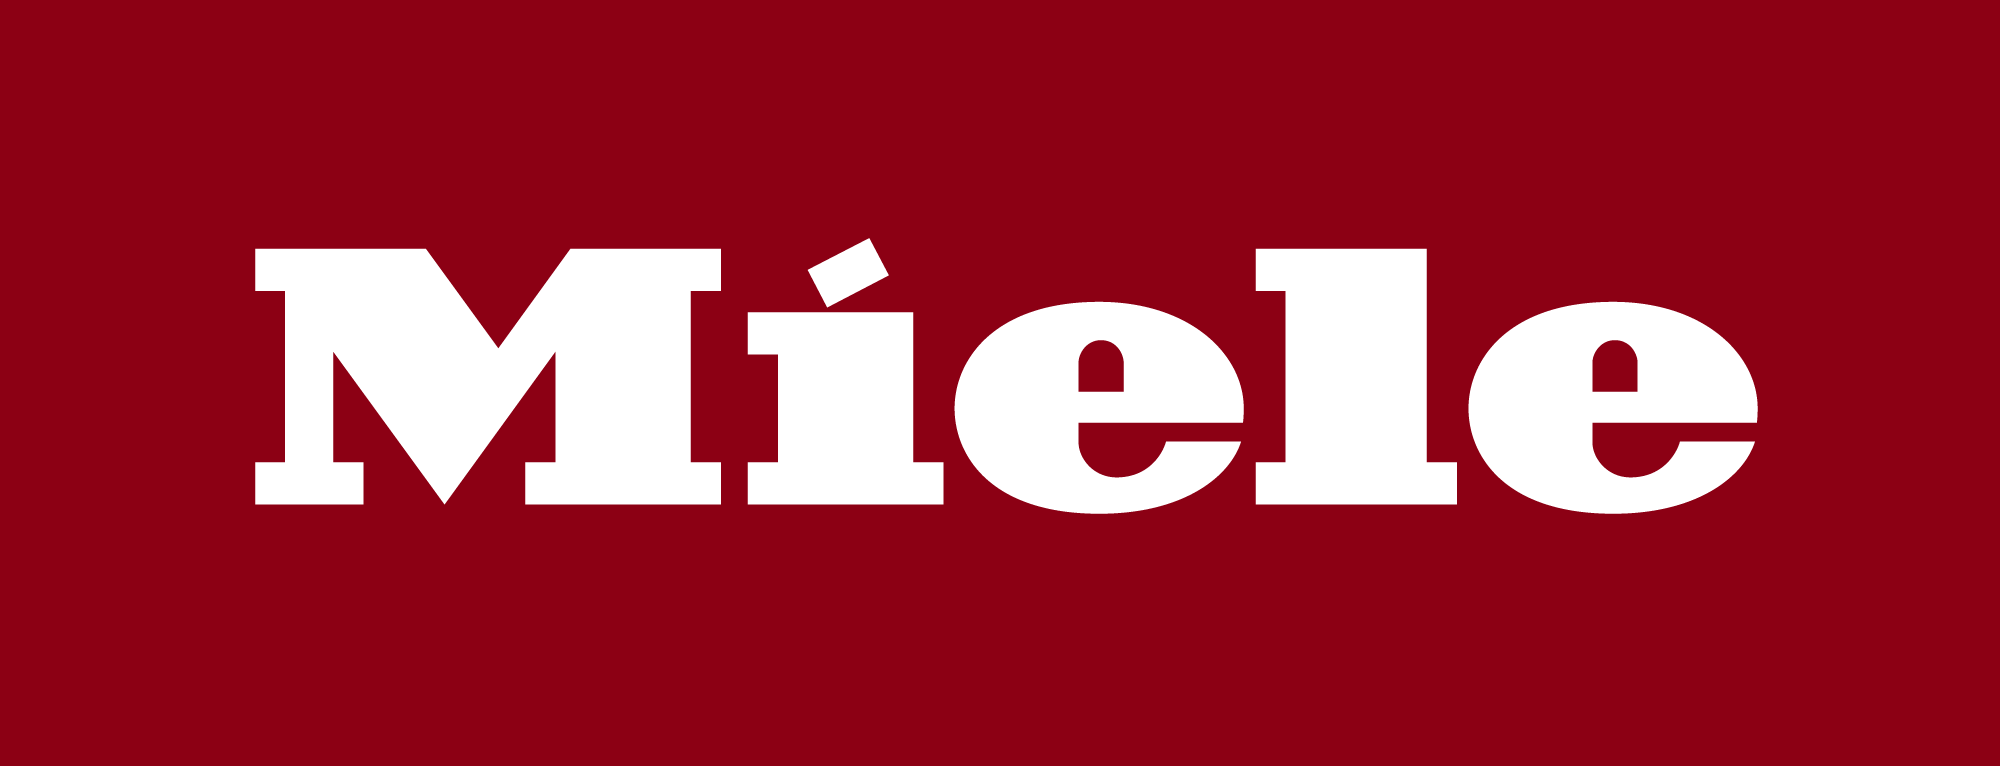 miele_logo_s_red_srgb.png